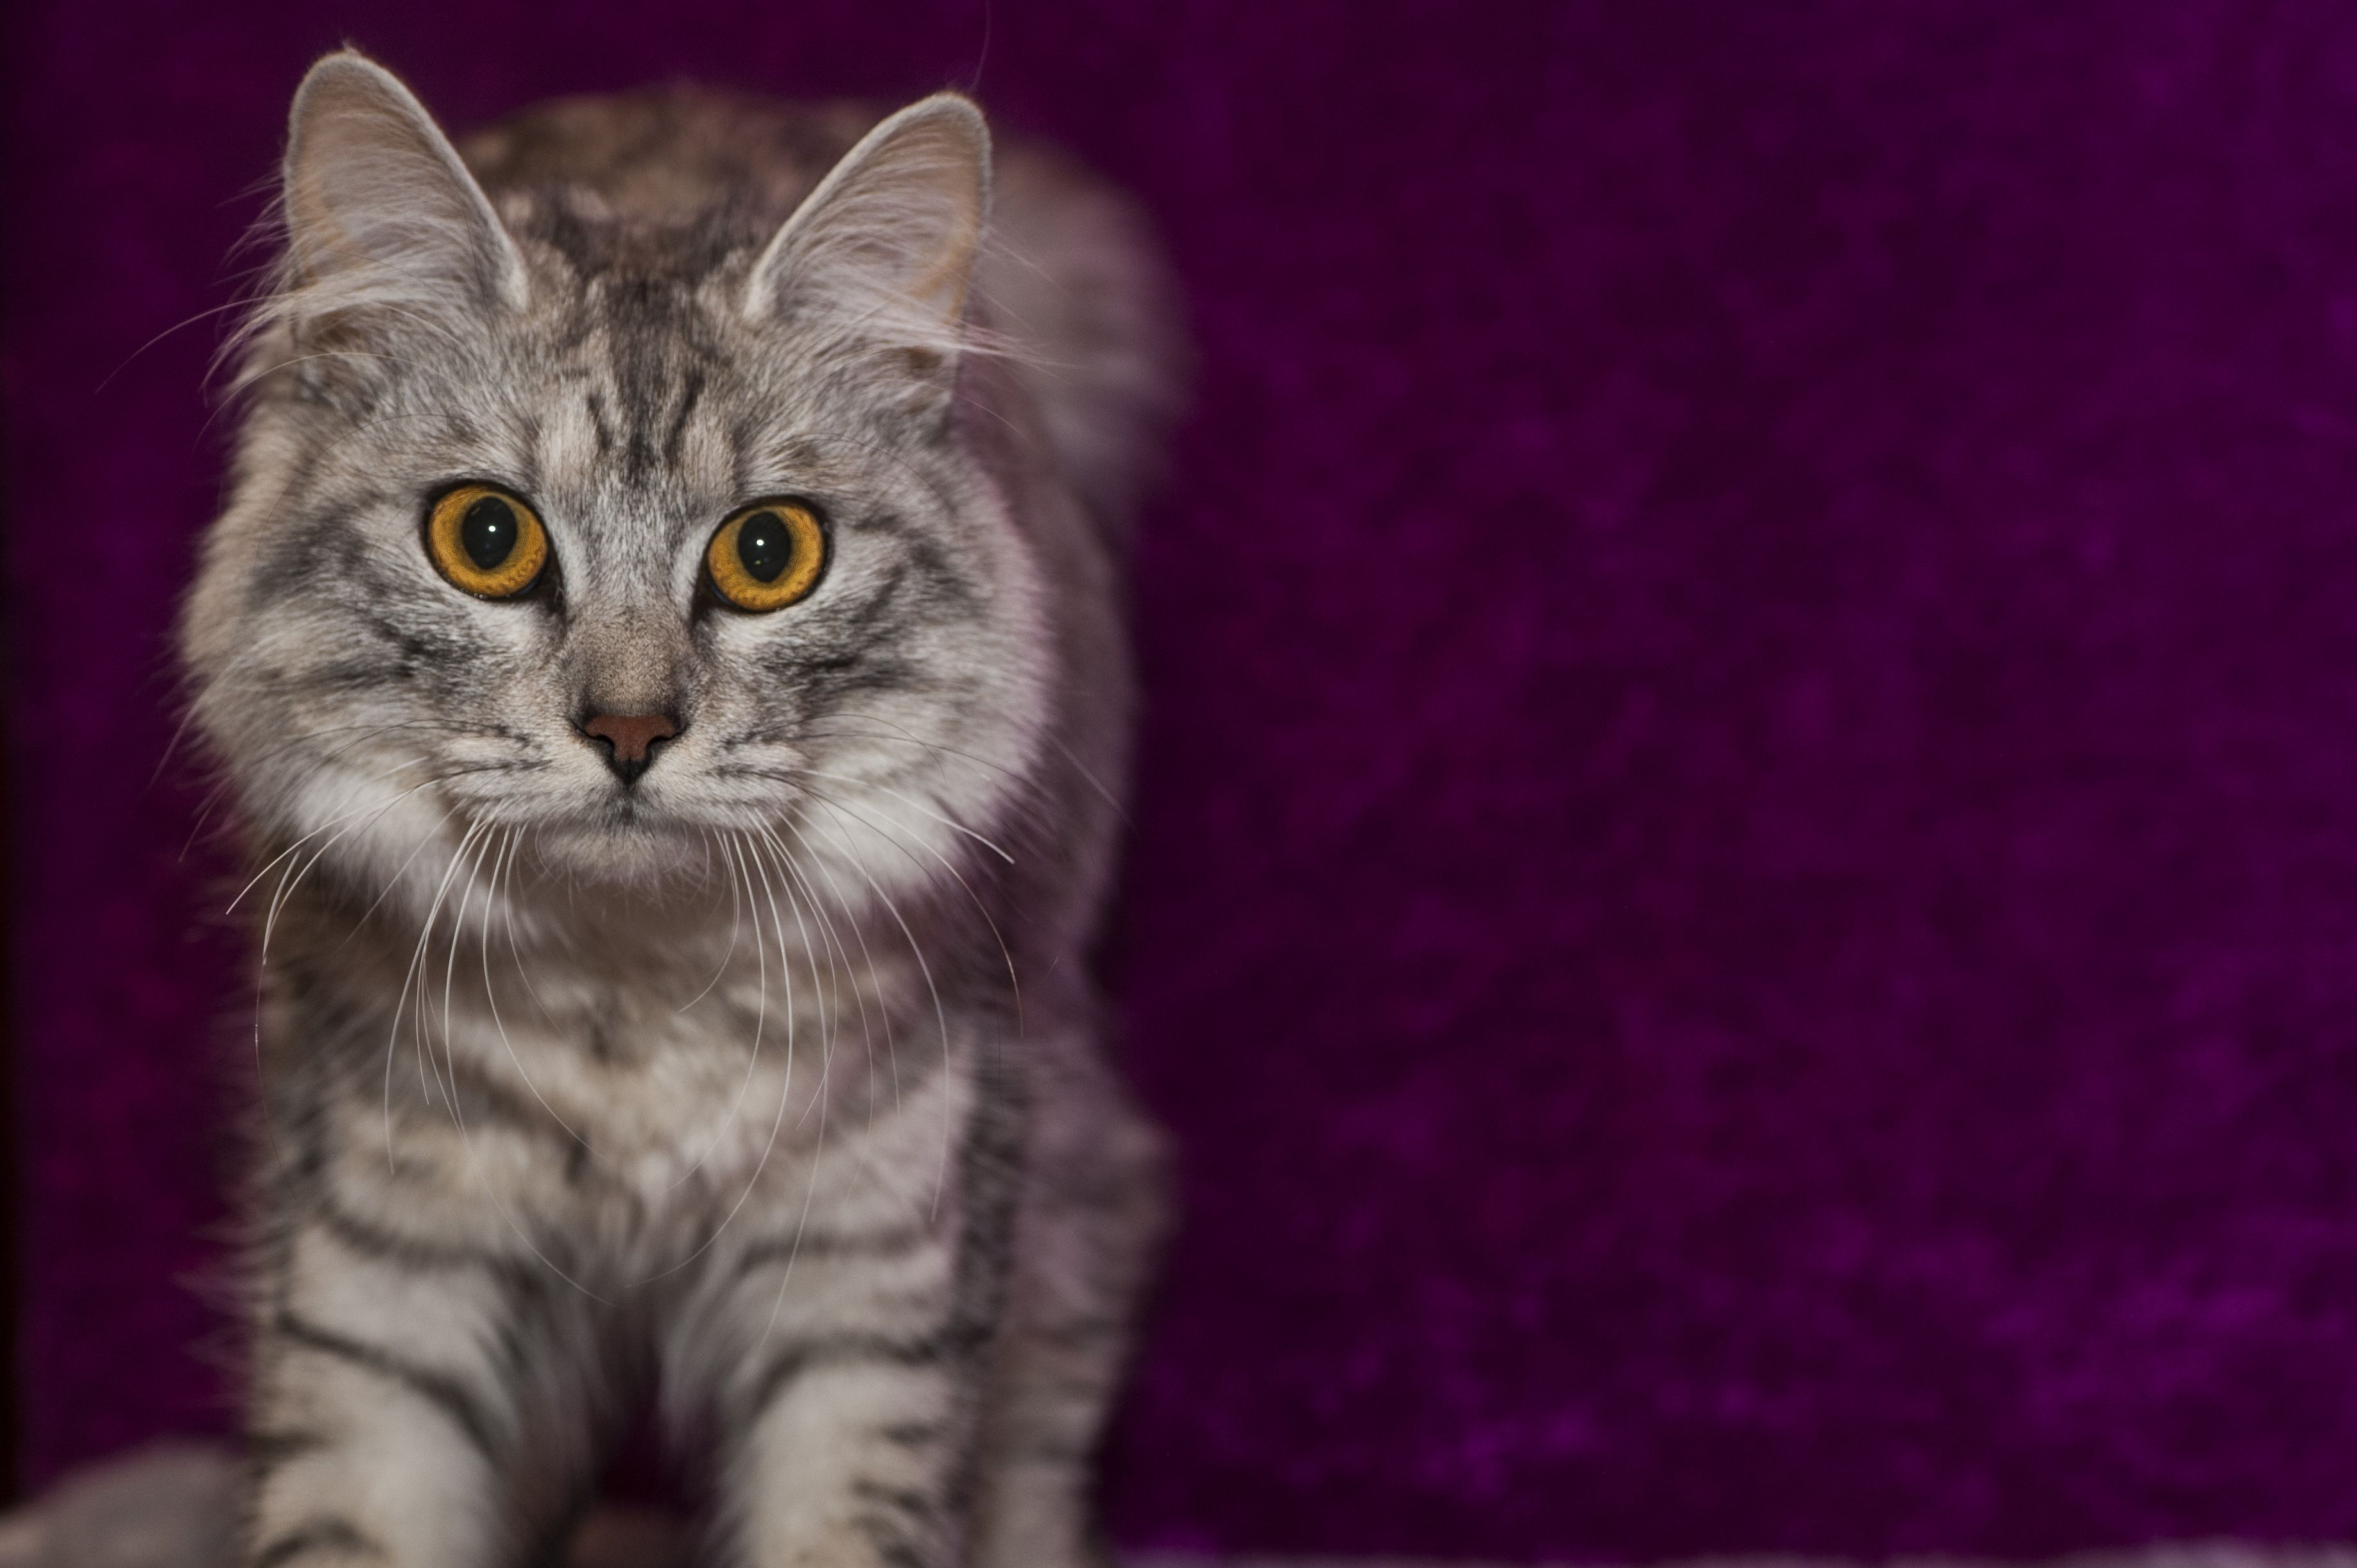 9 Cats That Act Like Dogs: Abyssinian, Ragdoll, Maine Coon